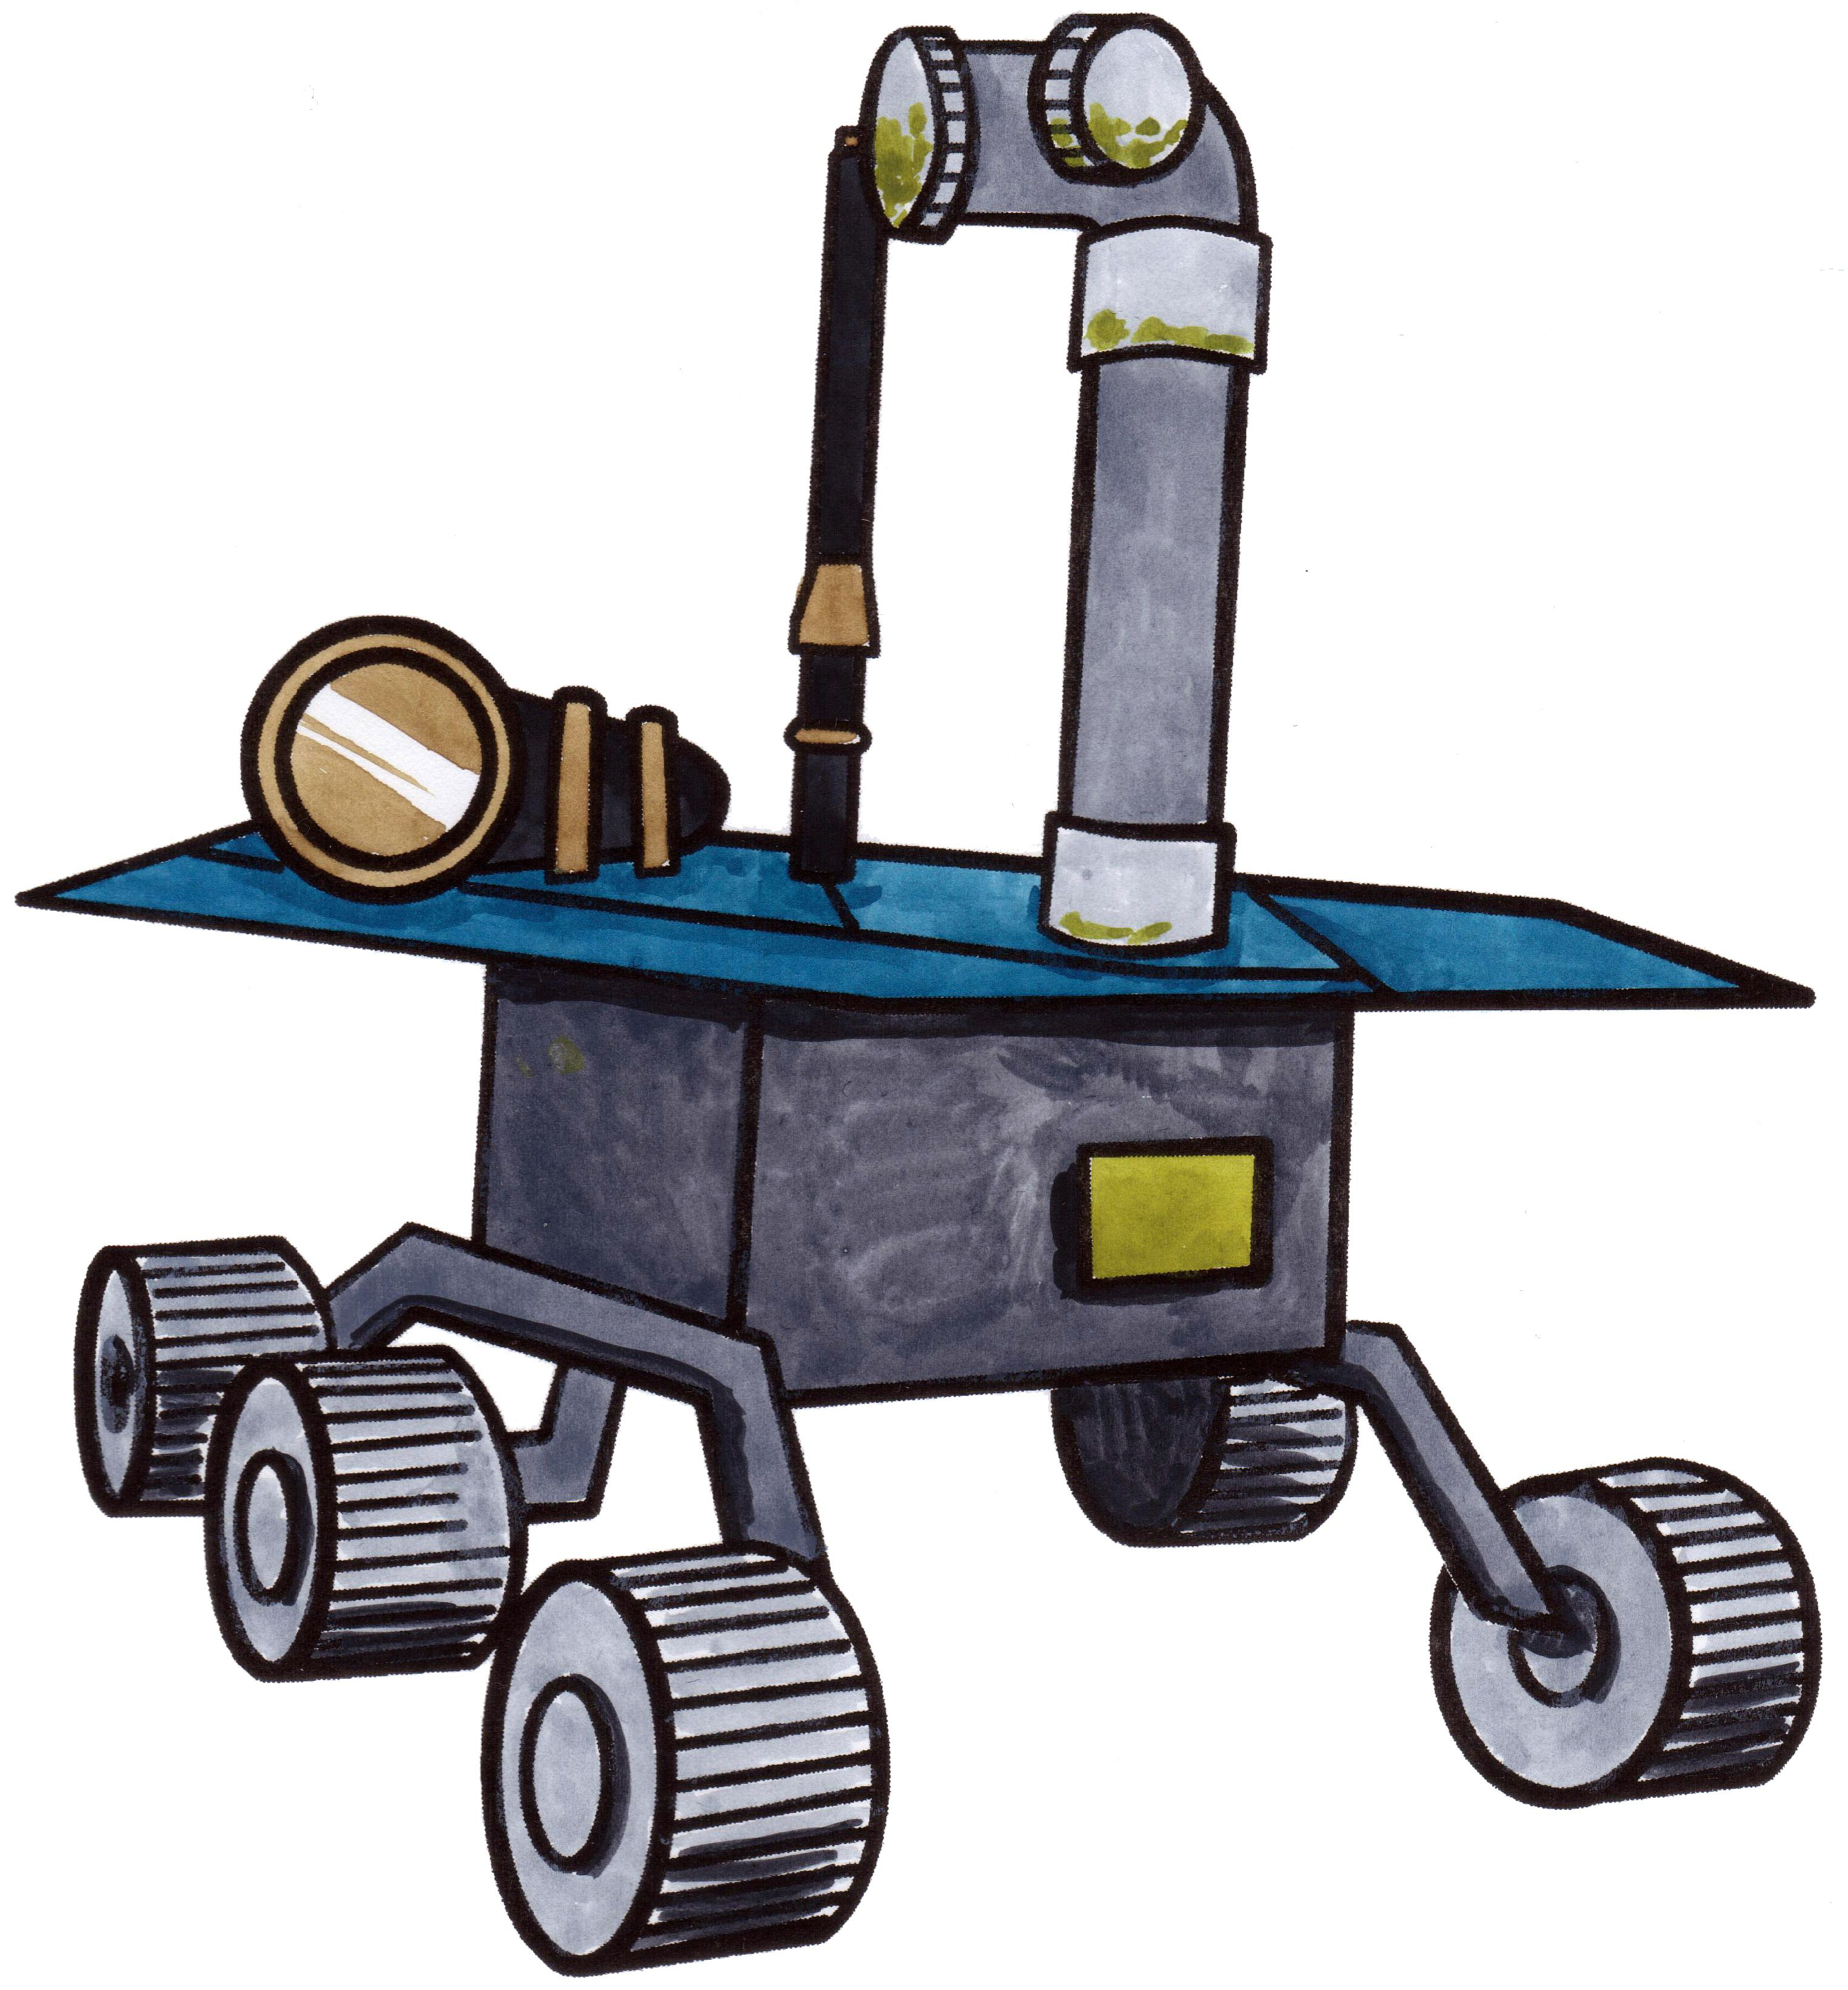 3048x3282 How To Draw A Space Rover. Rovers Are Sent To Planets That Are